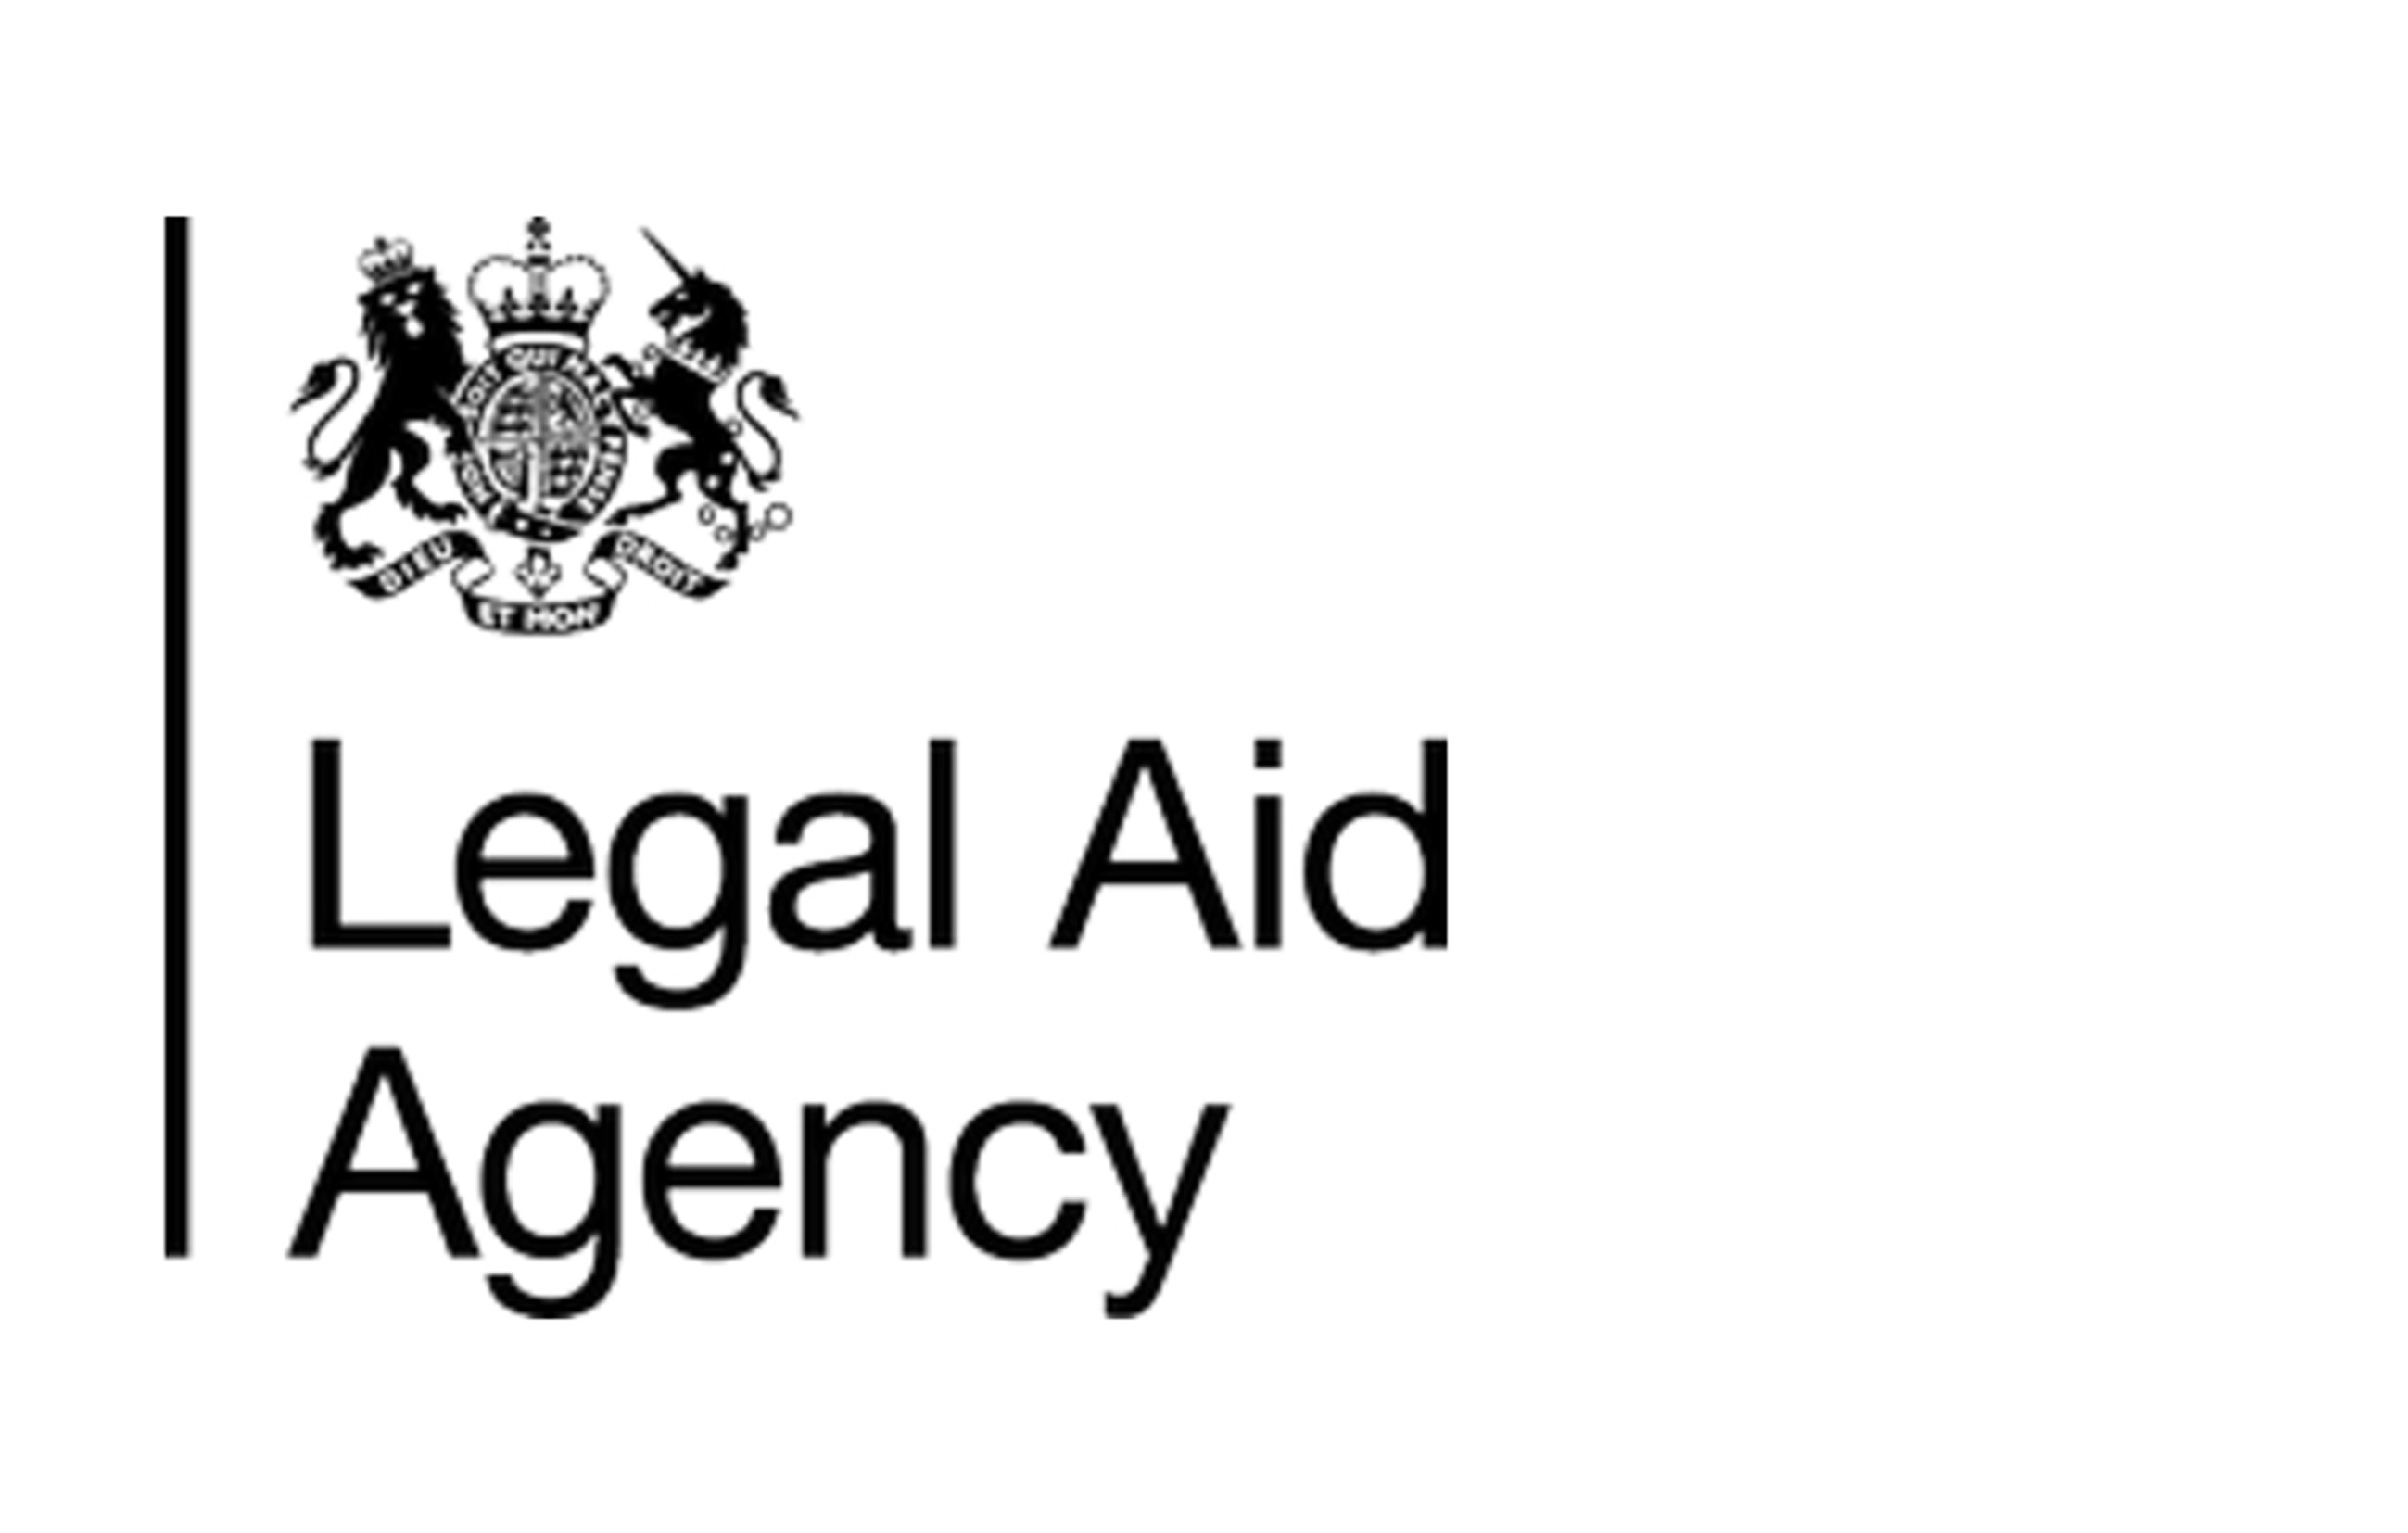 Tick-box Legal Aid Agency response to funding authority request: not reason enough